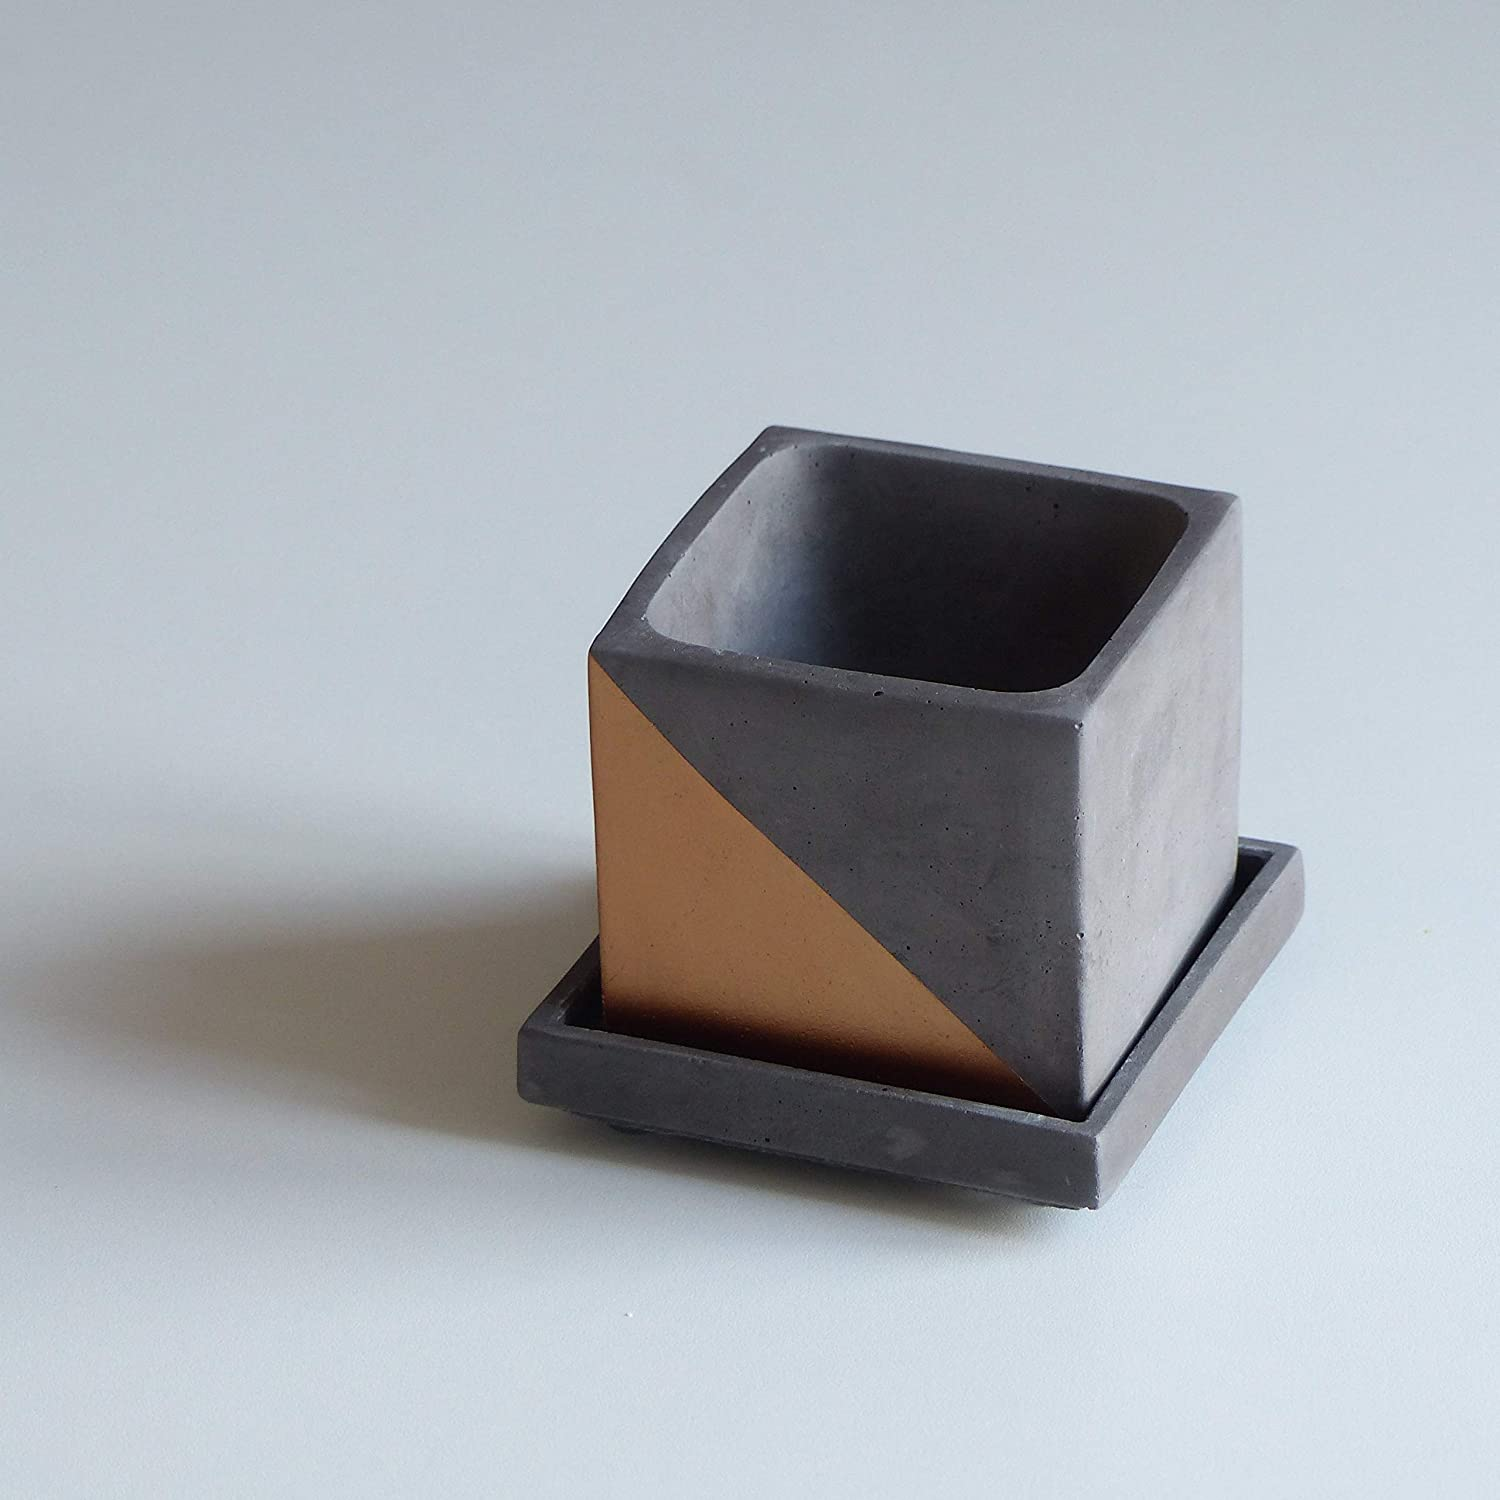 Amazon.com: Concrete square plate, Cube planter saucer, width 9.5cm, gray green white, Free shipping - Handmade by french artisan Atelier IDeco: Handmade